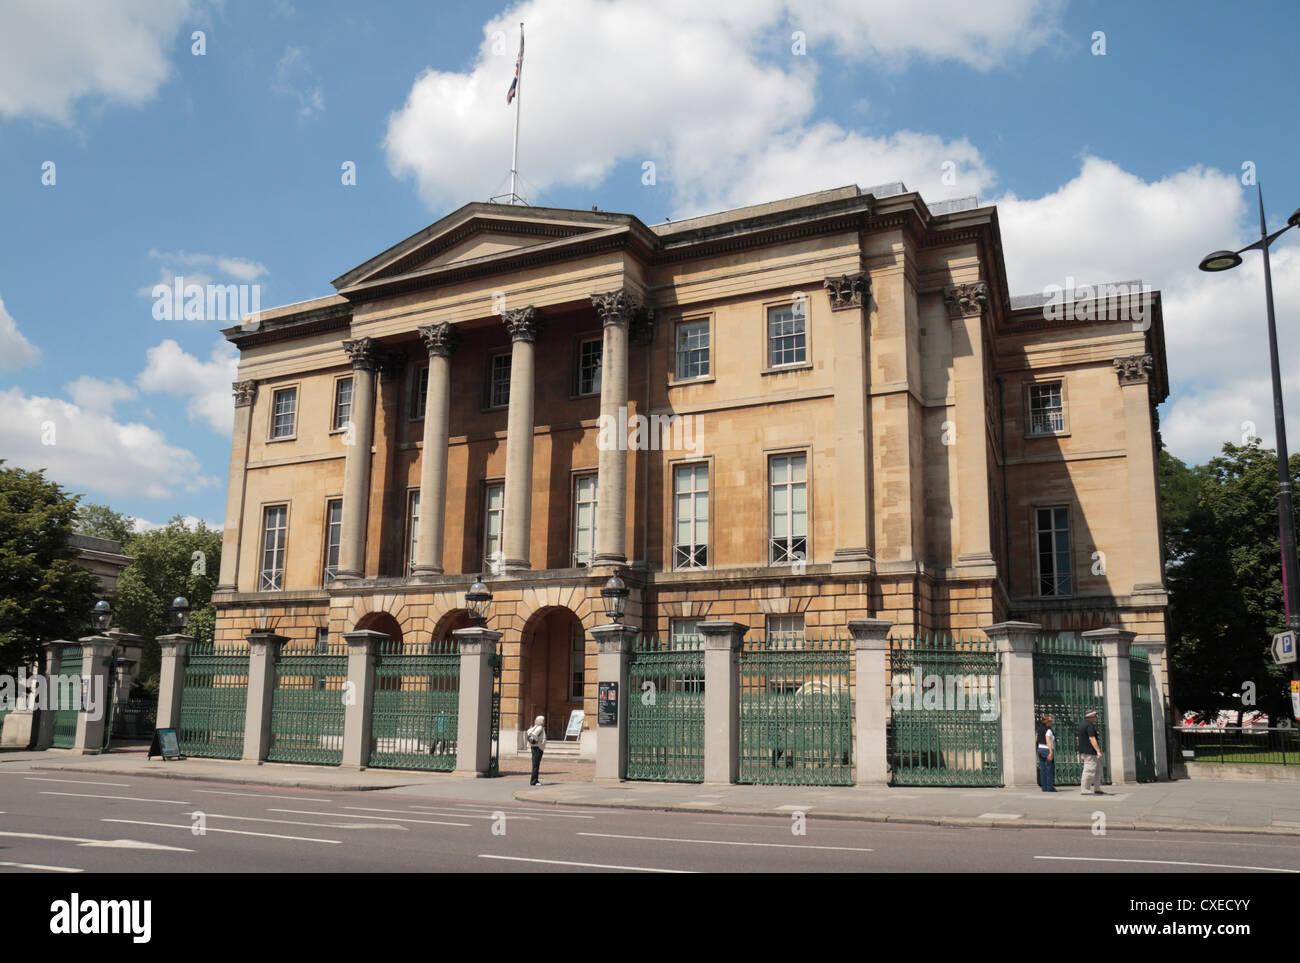 Apsley House, the London townhouse home of the Duke of Wellington, Hyde Park Corner, London, UK. - Stock Image